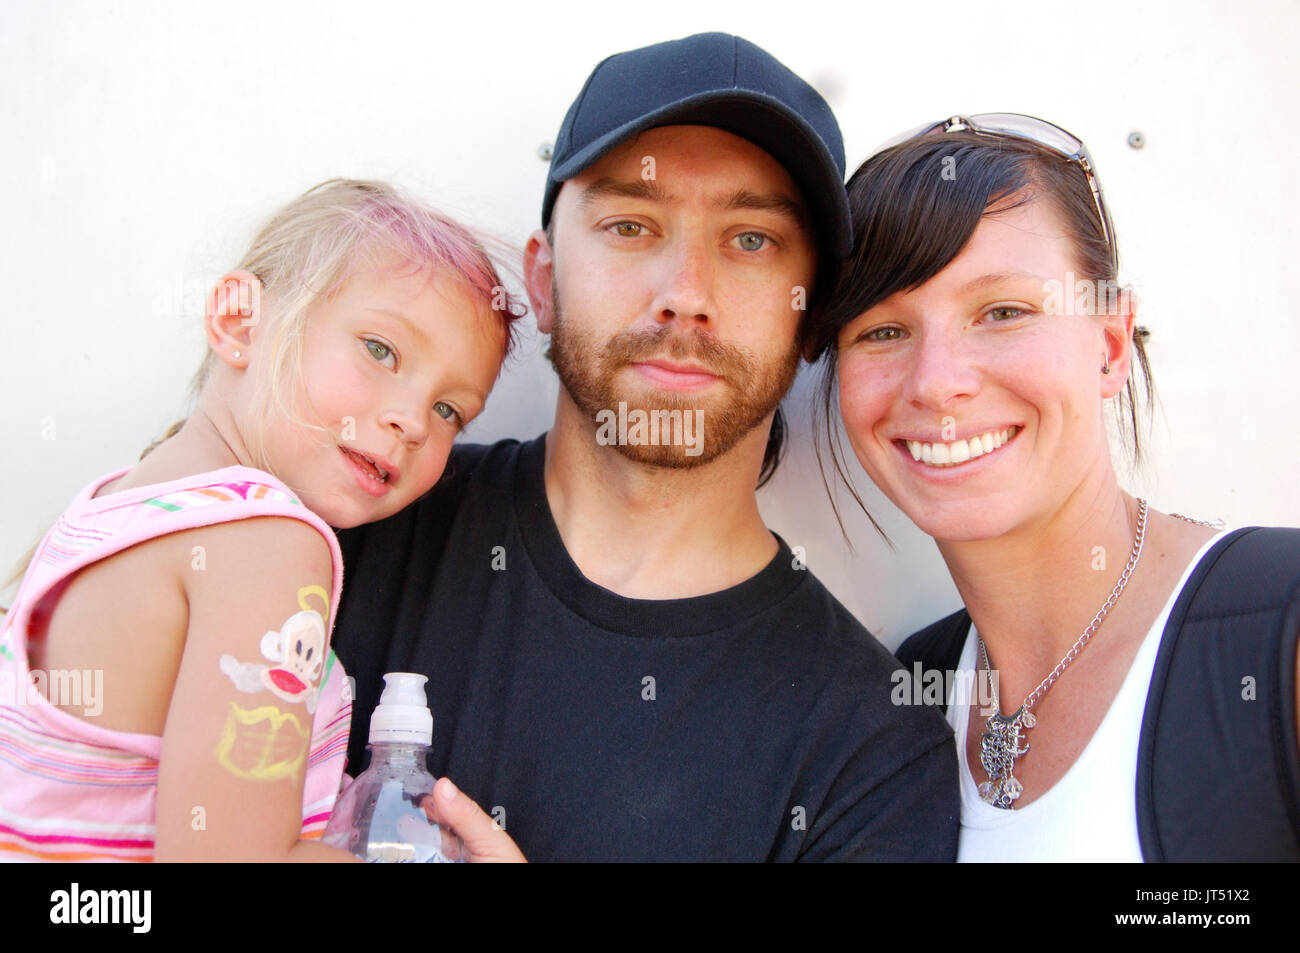 Tim McIlrath Rise Against daughter wife portrait 2007 Lollapalooza Chicago,Il Stock Photo